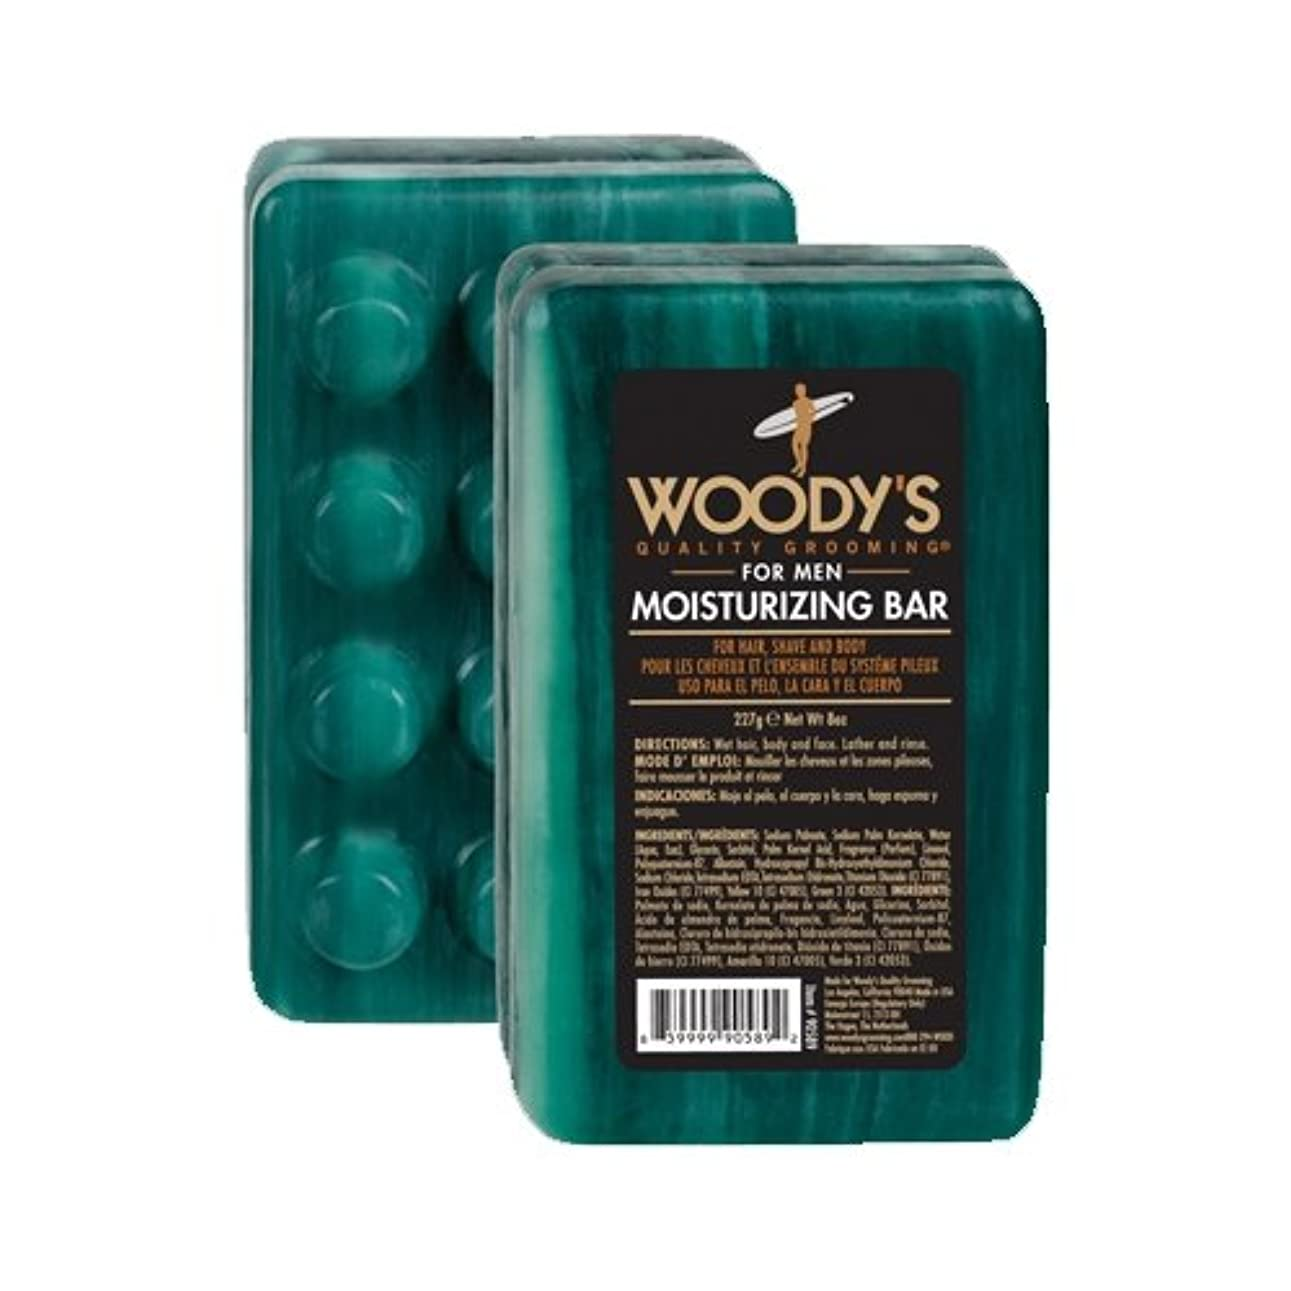 属性ハント汚物Woody's Moisturizing Bar 8oz